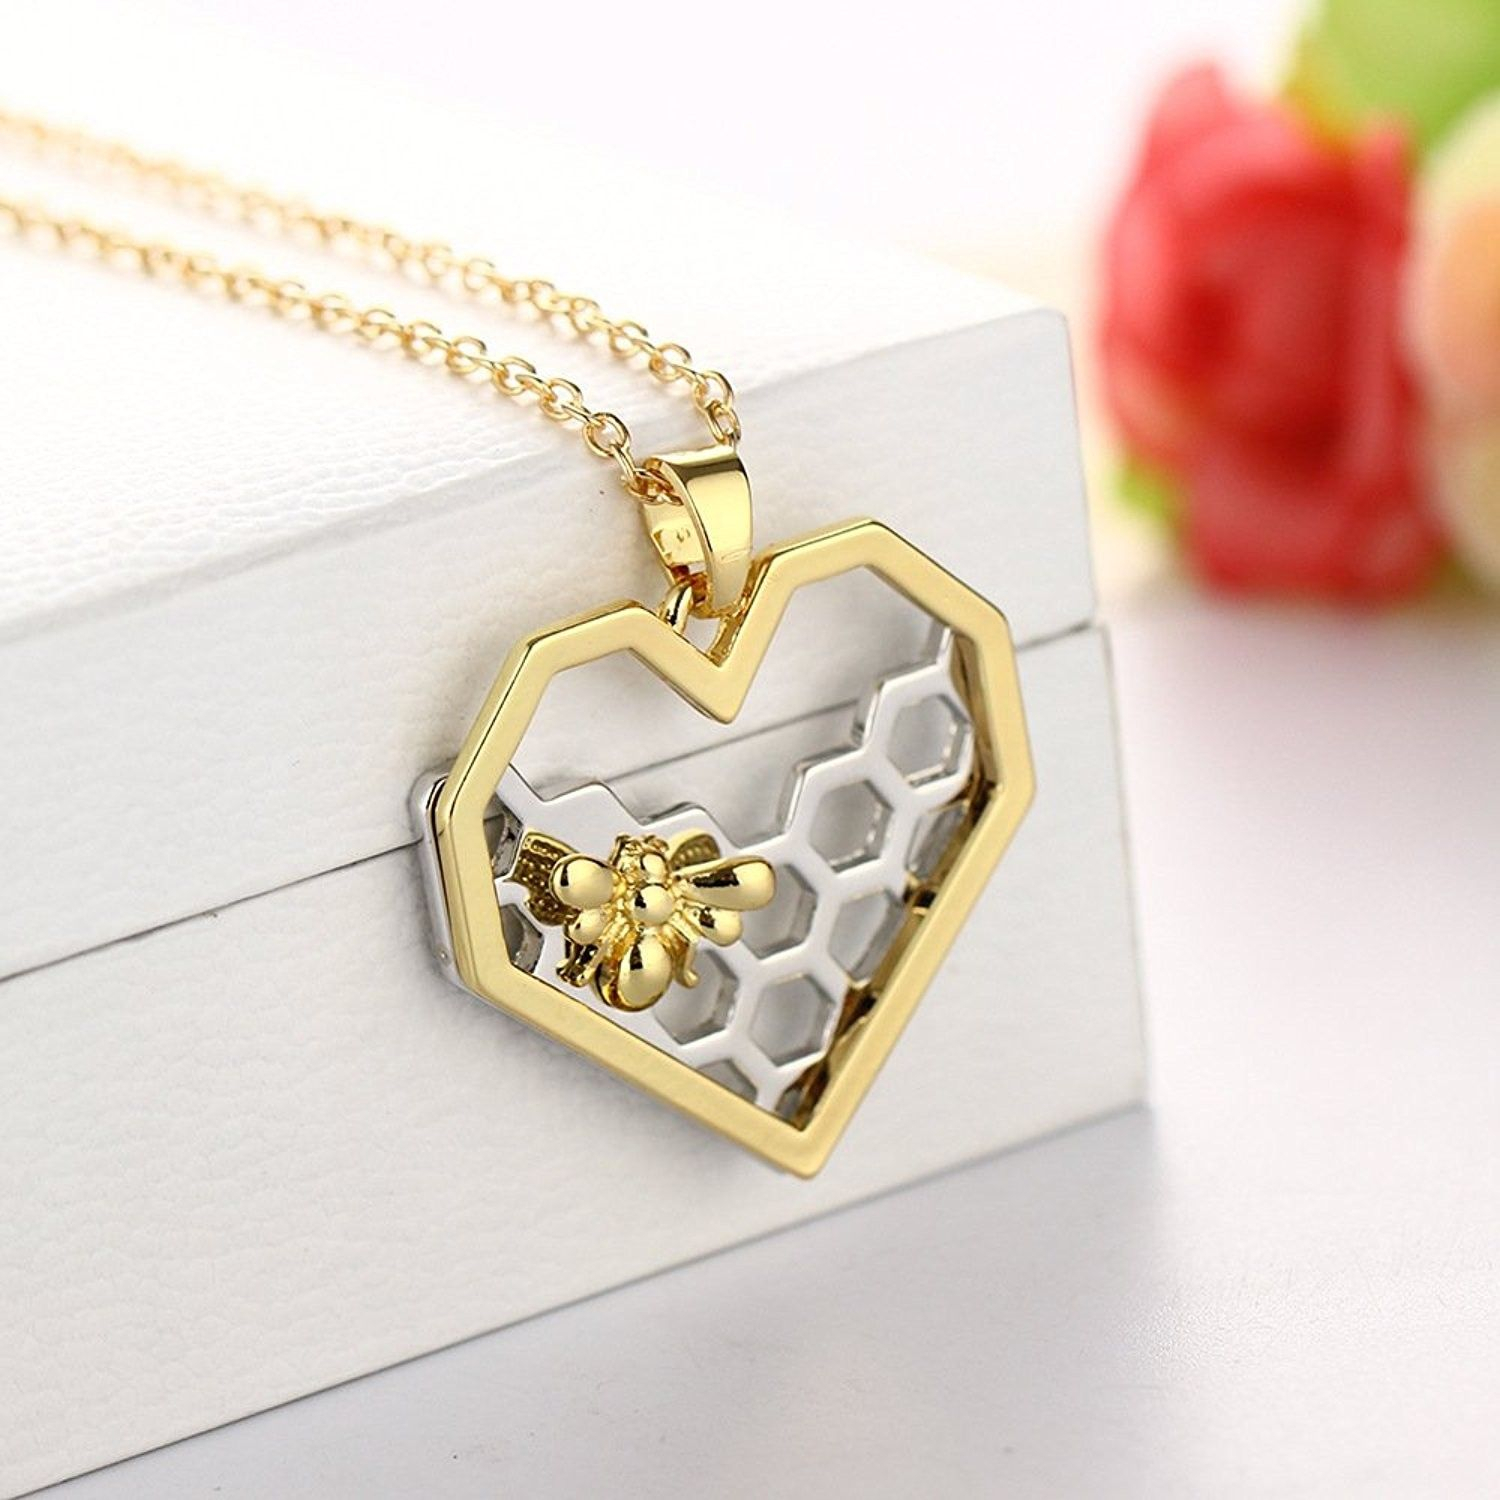 Shop, Necklaces, Pendants, Heart Hexagon Silver Honeycomb Necklace Pertaining To Newest Heart Honeycomb Lace Pendant Necklaces (View 22 of 25)